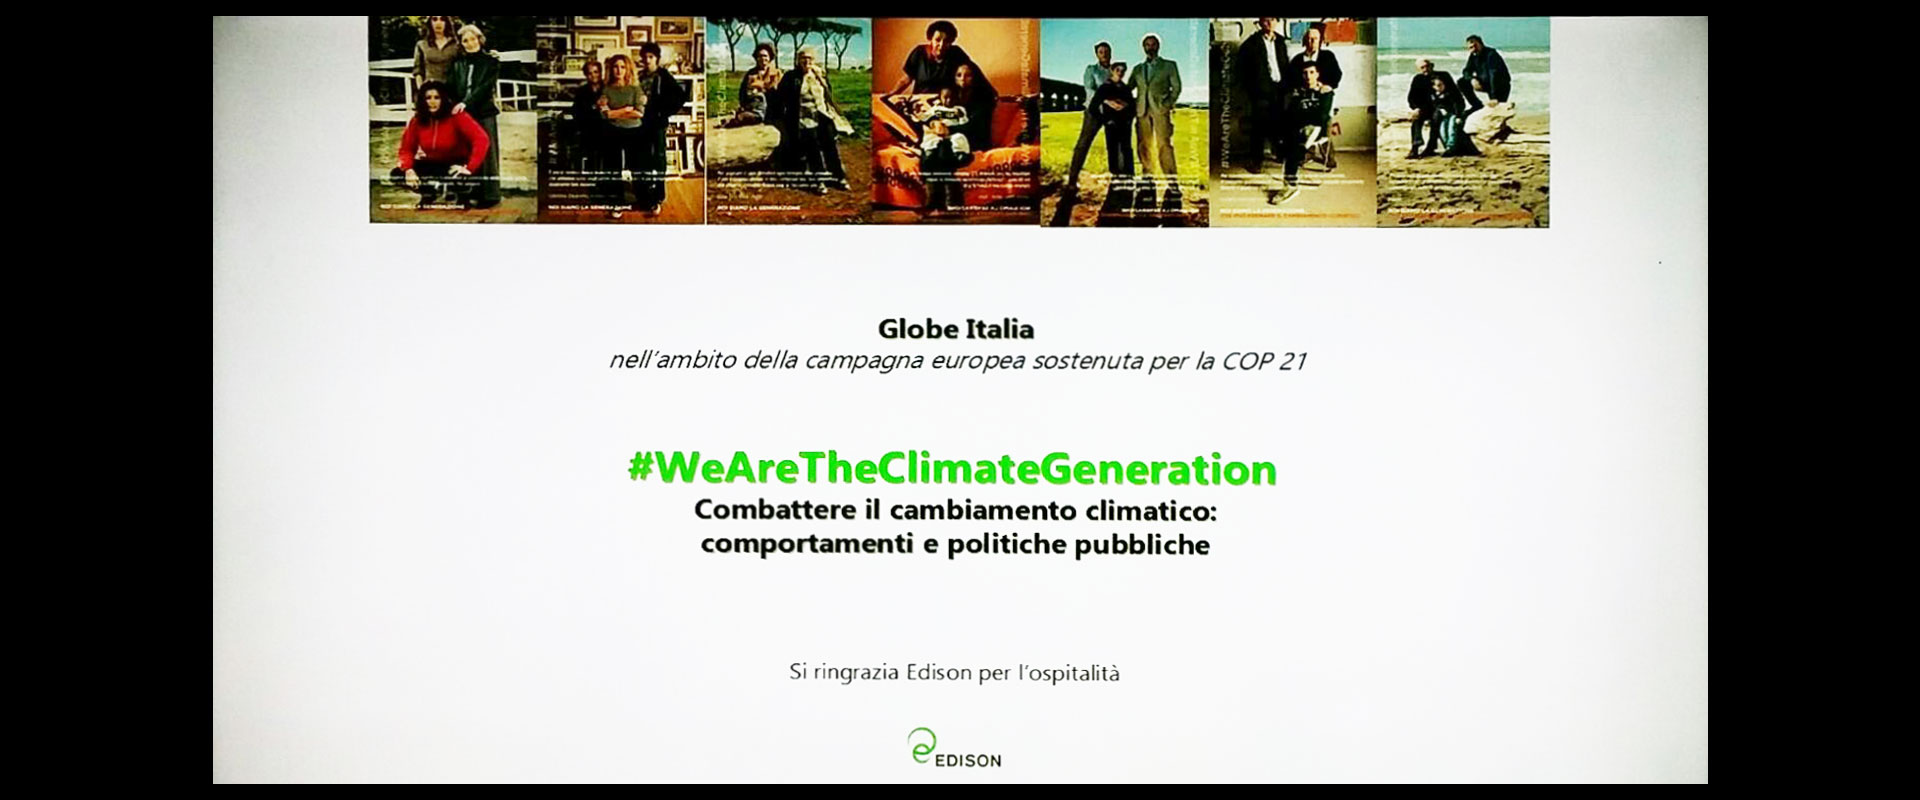 We are the climate